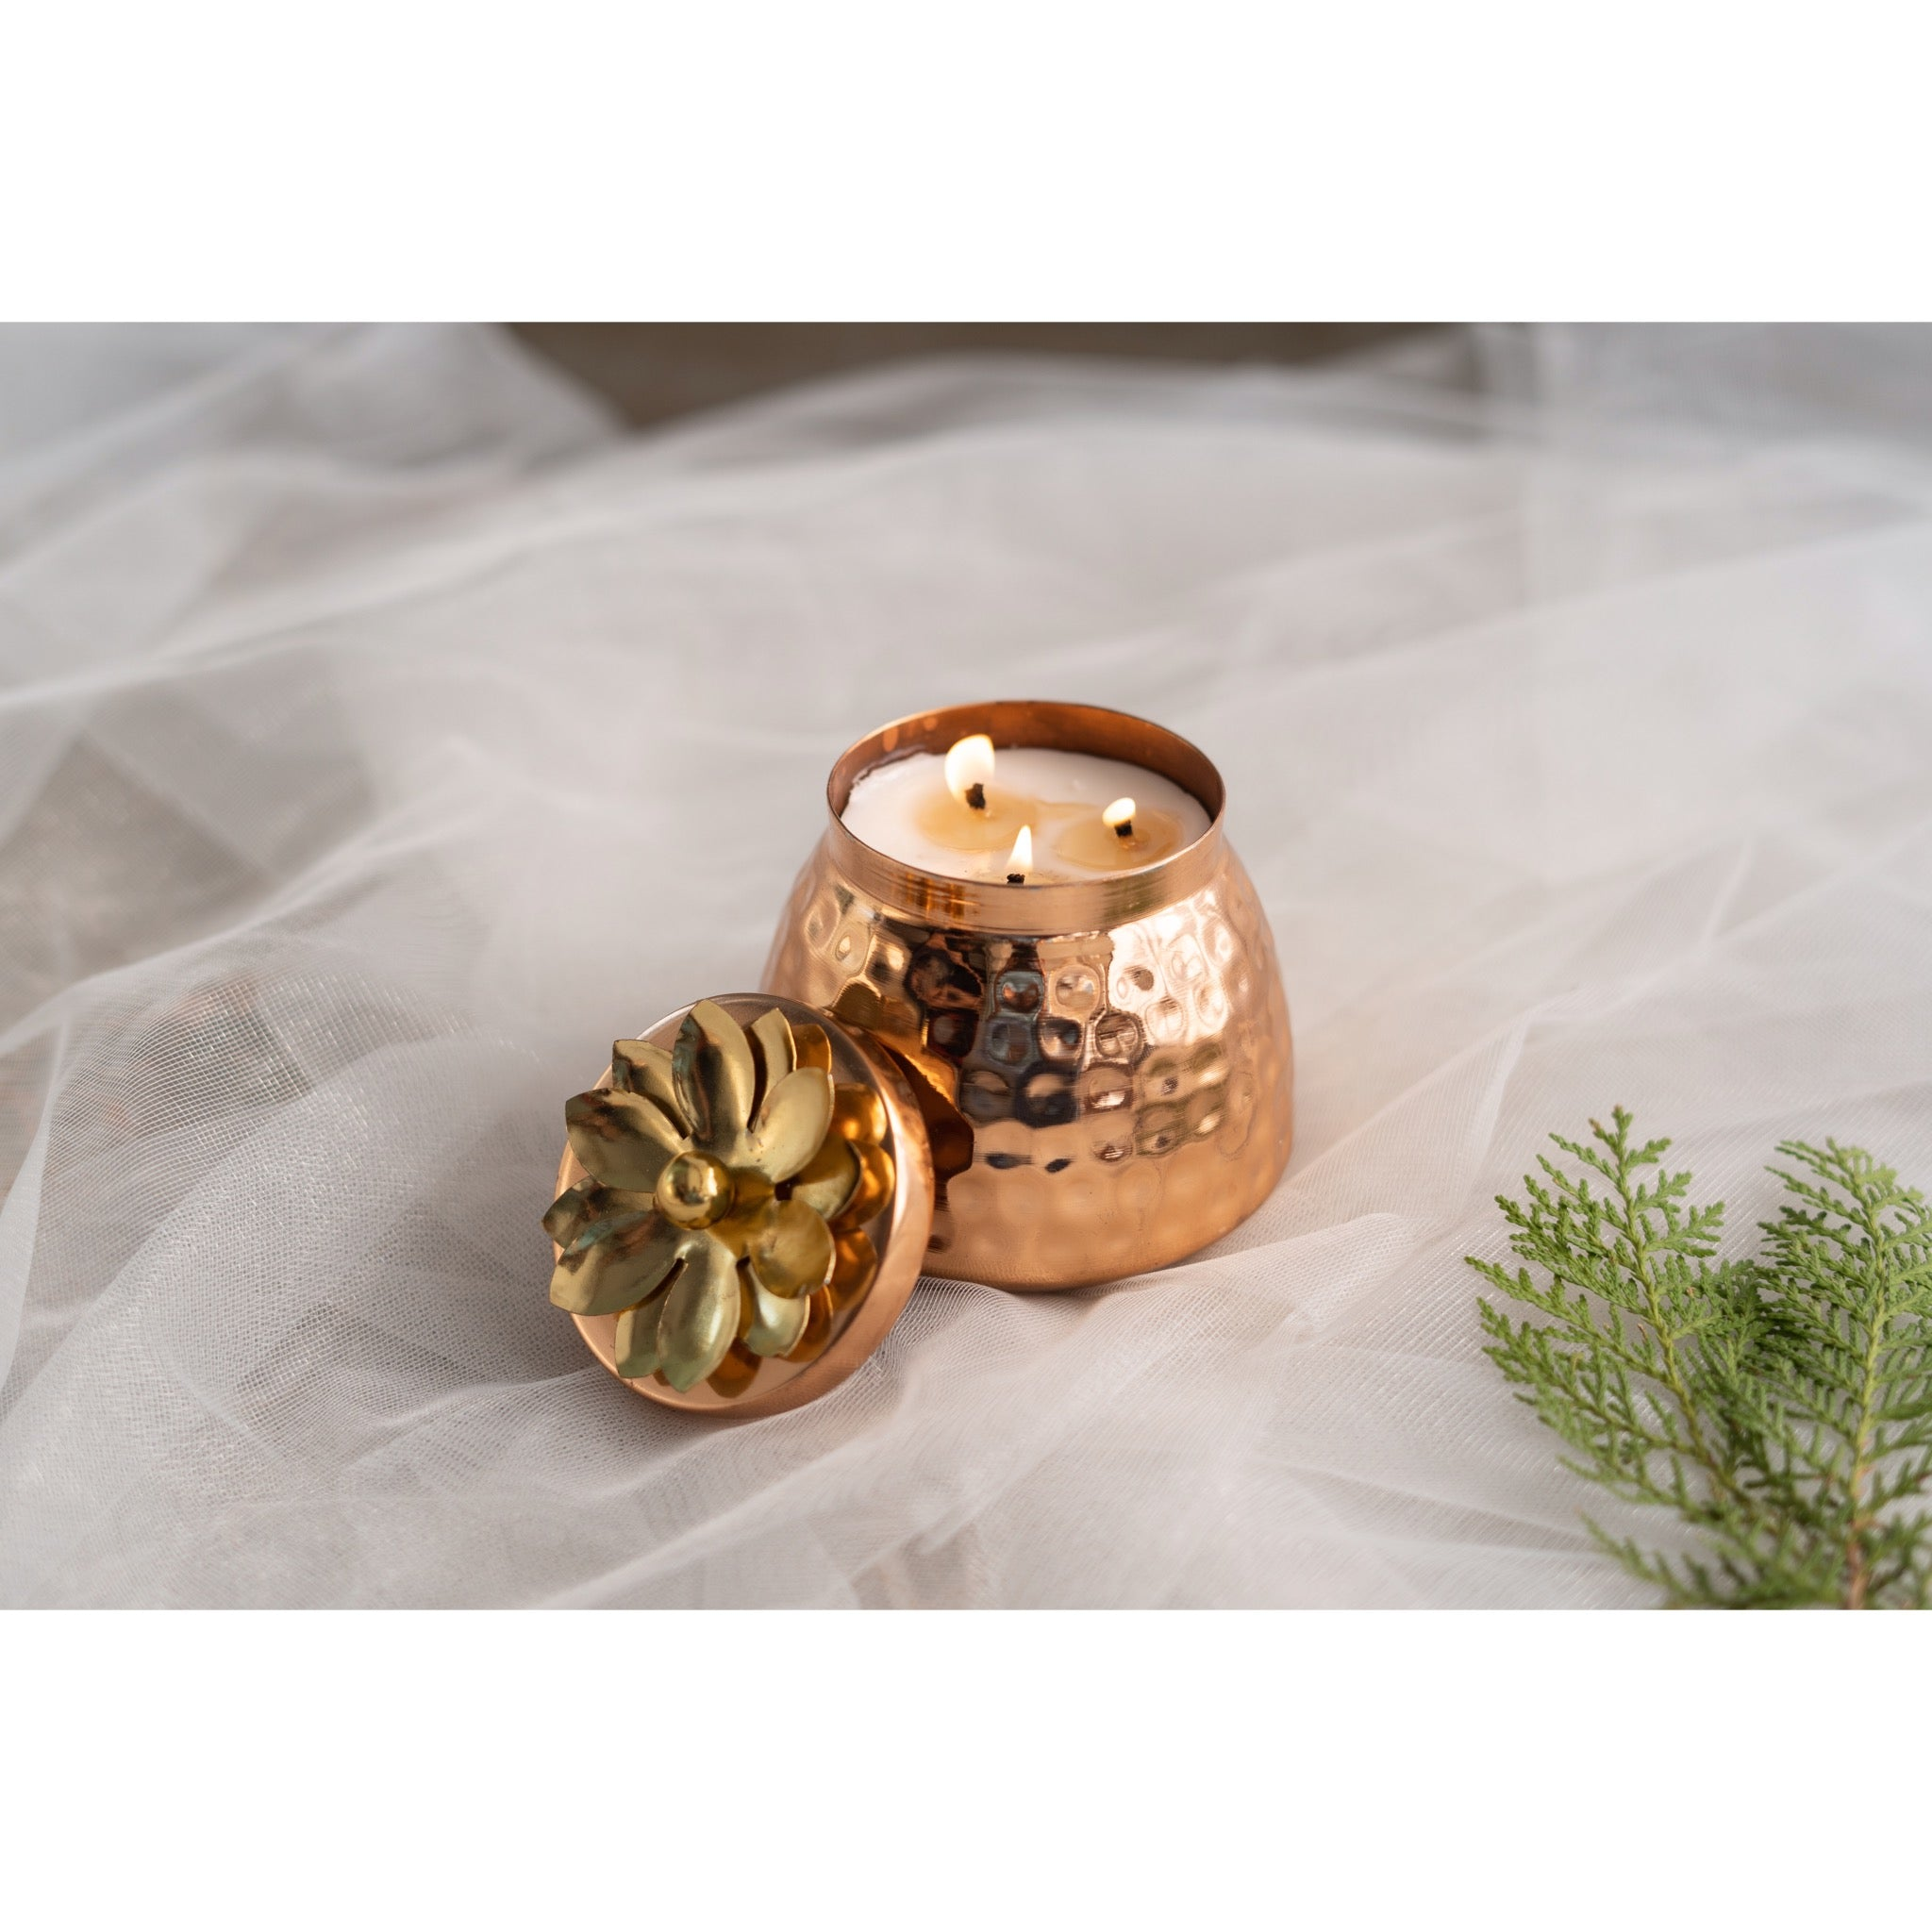 Joyous Beam Candles Rose Gold Multi-wick Handi Scented Candle - Patchouli and Cedarwood 350g